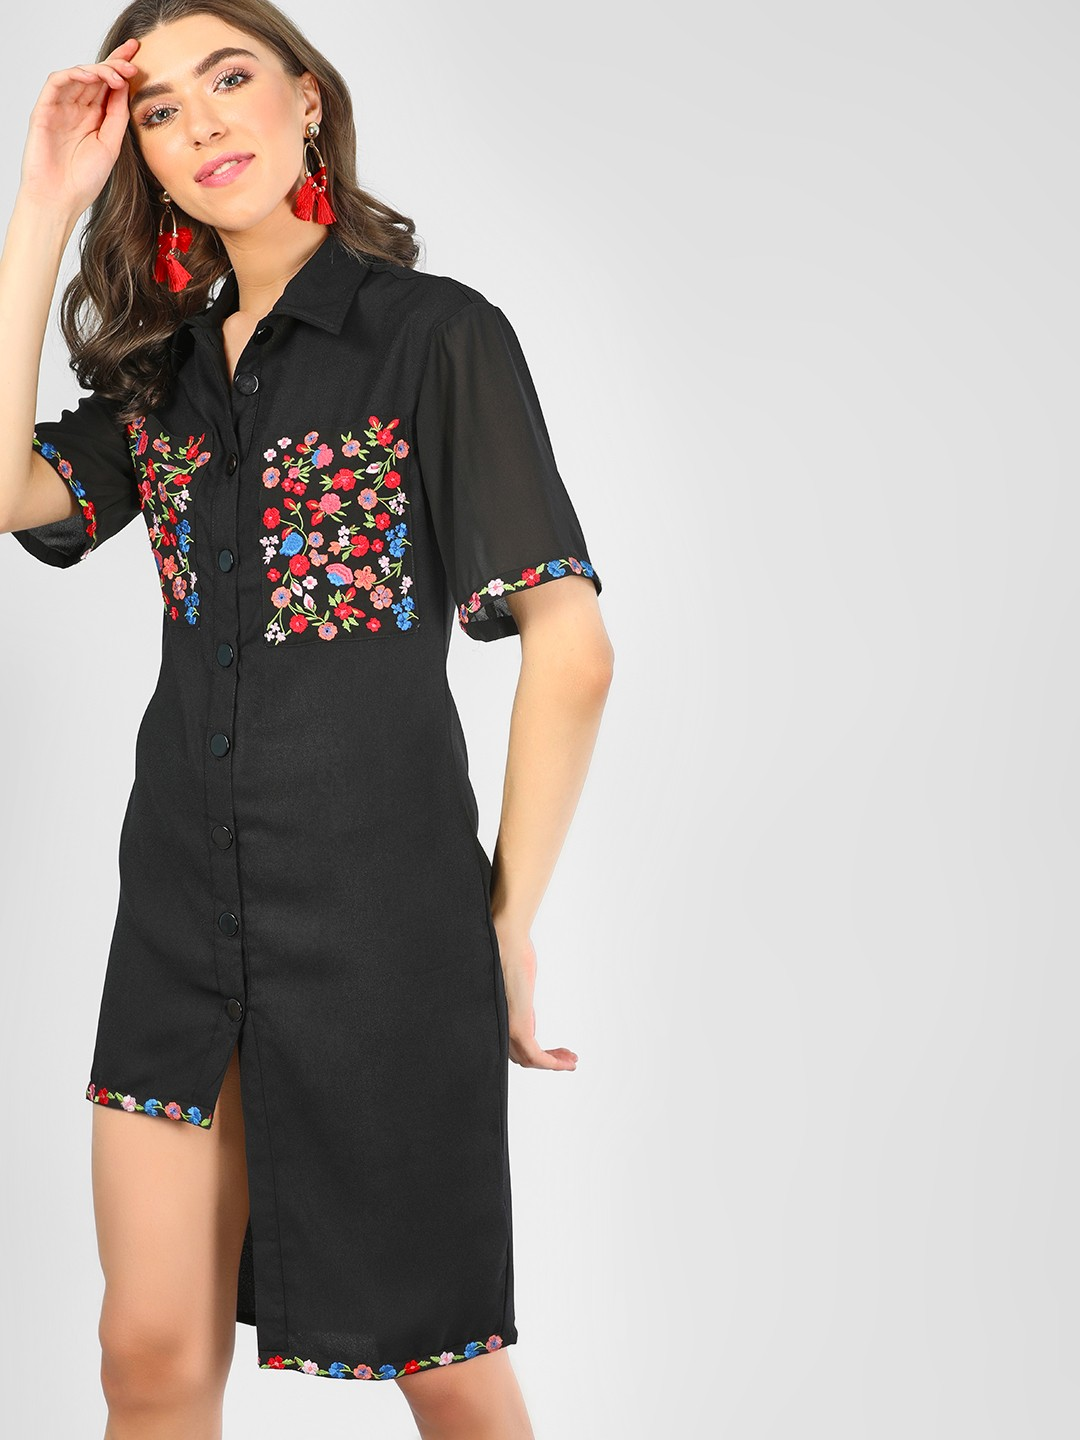 KOOVS Black Shirt Dress With Embroidery 1